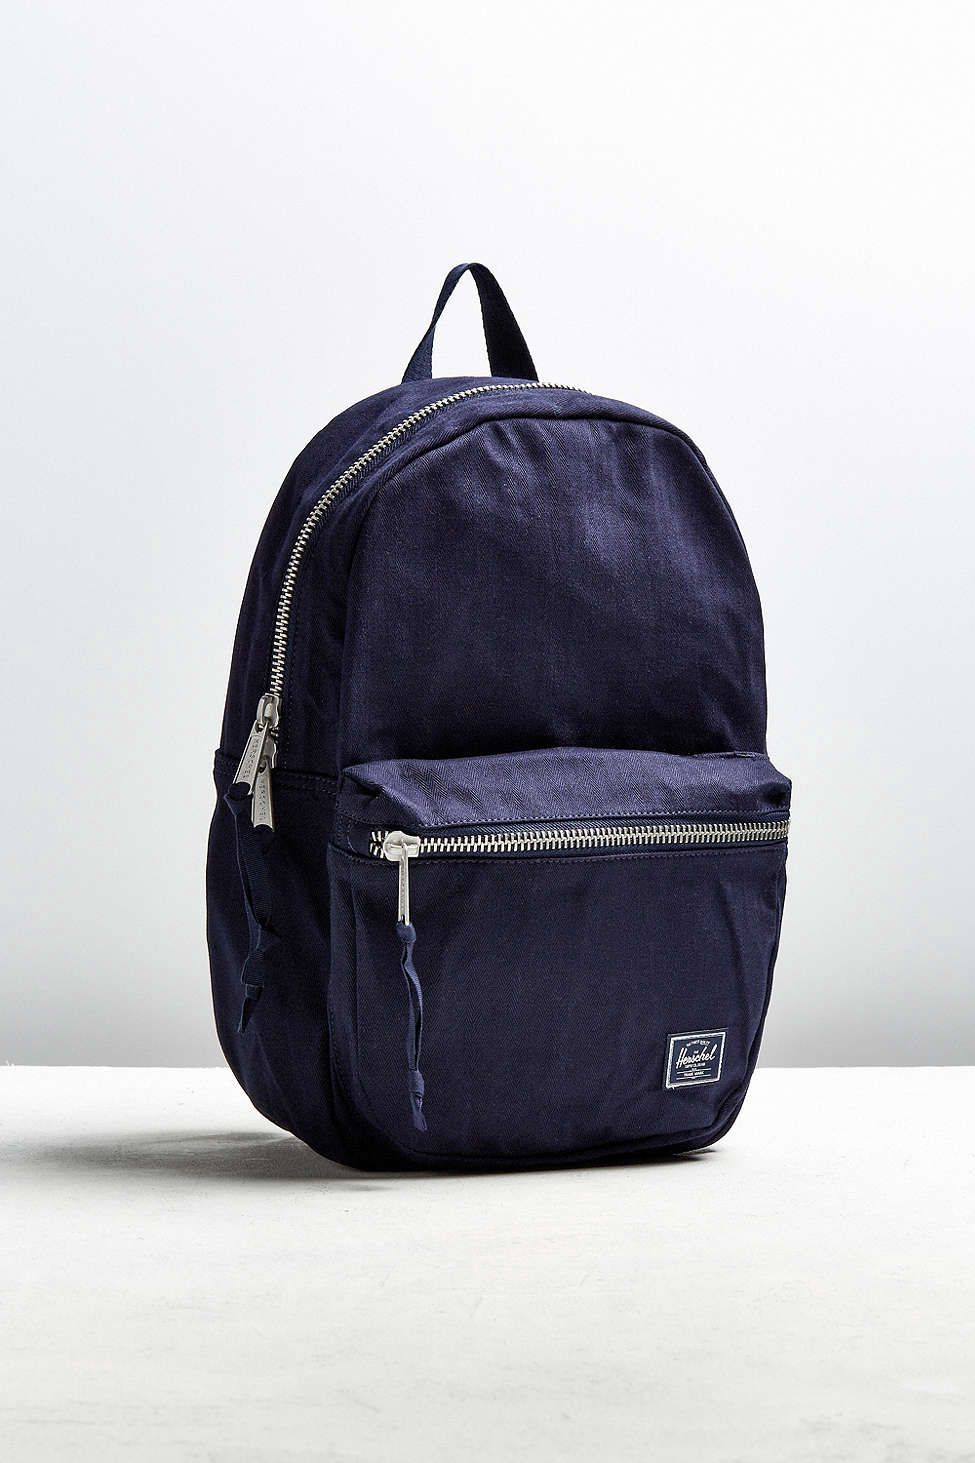 3df9ced8024 Herschel Supply Co. Lawson Surplus Backpack - Urban Outfitters